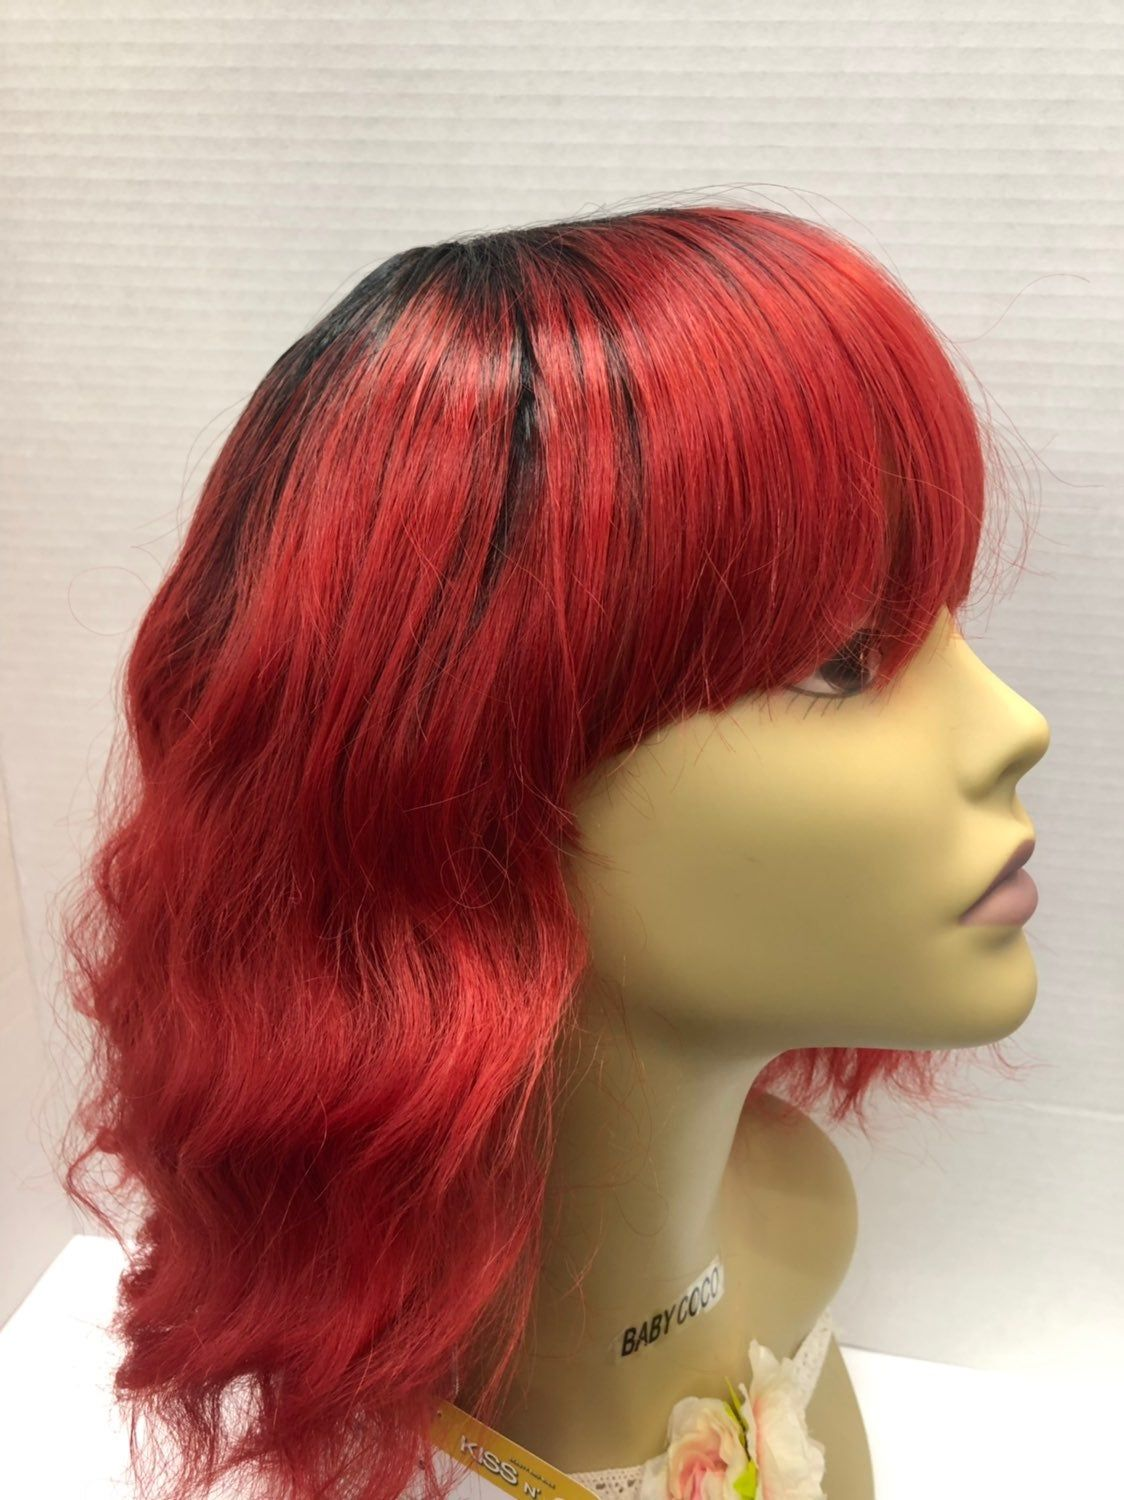 Premium Wig Color Ttred Heat Resistant Stretchable Cap With Adjustable Straps You Will Receive A Brand New One That Was Wig Colors Long Hair Styles Hair Styles